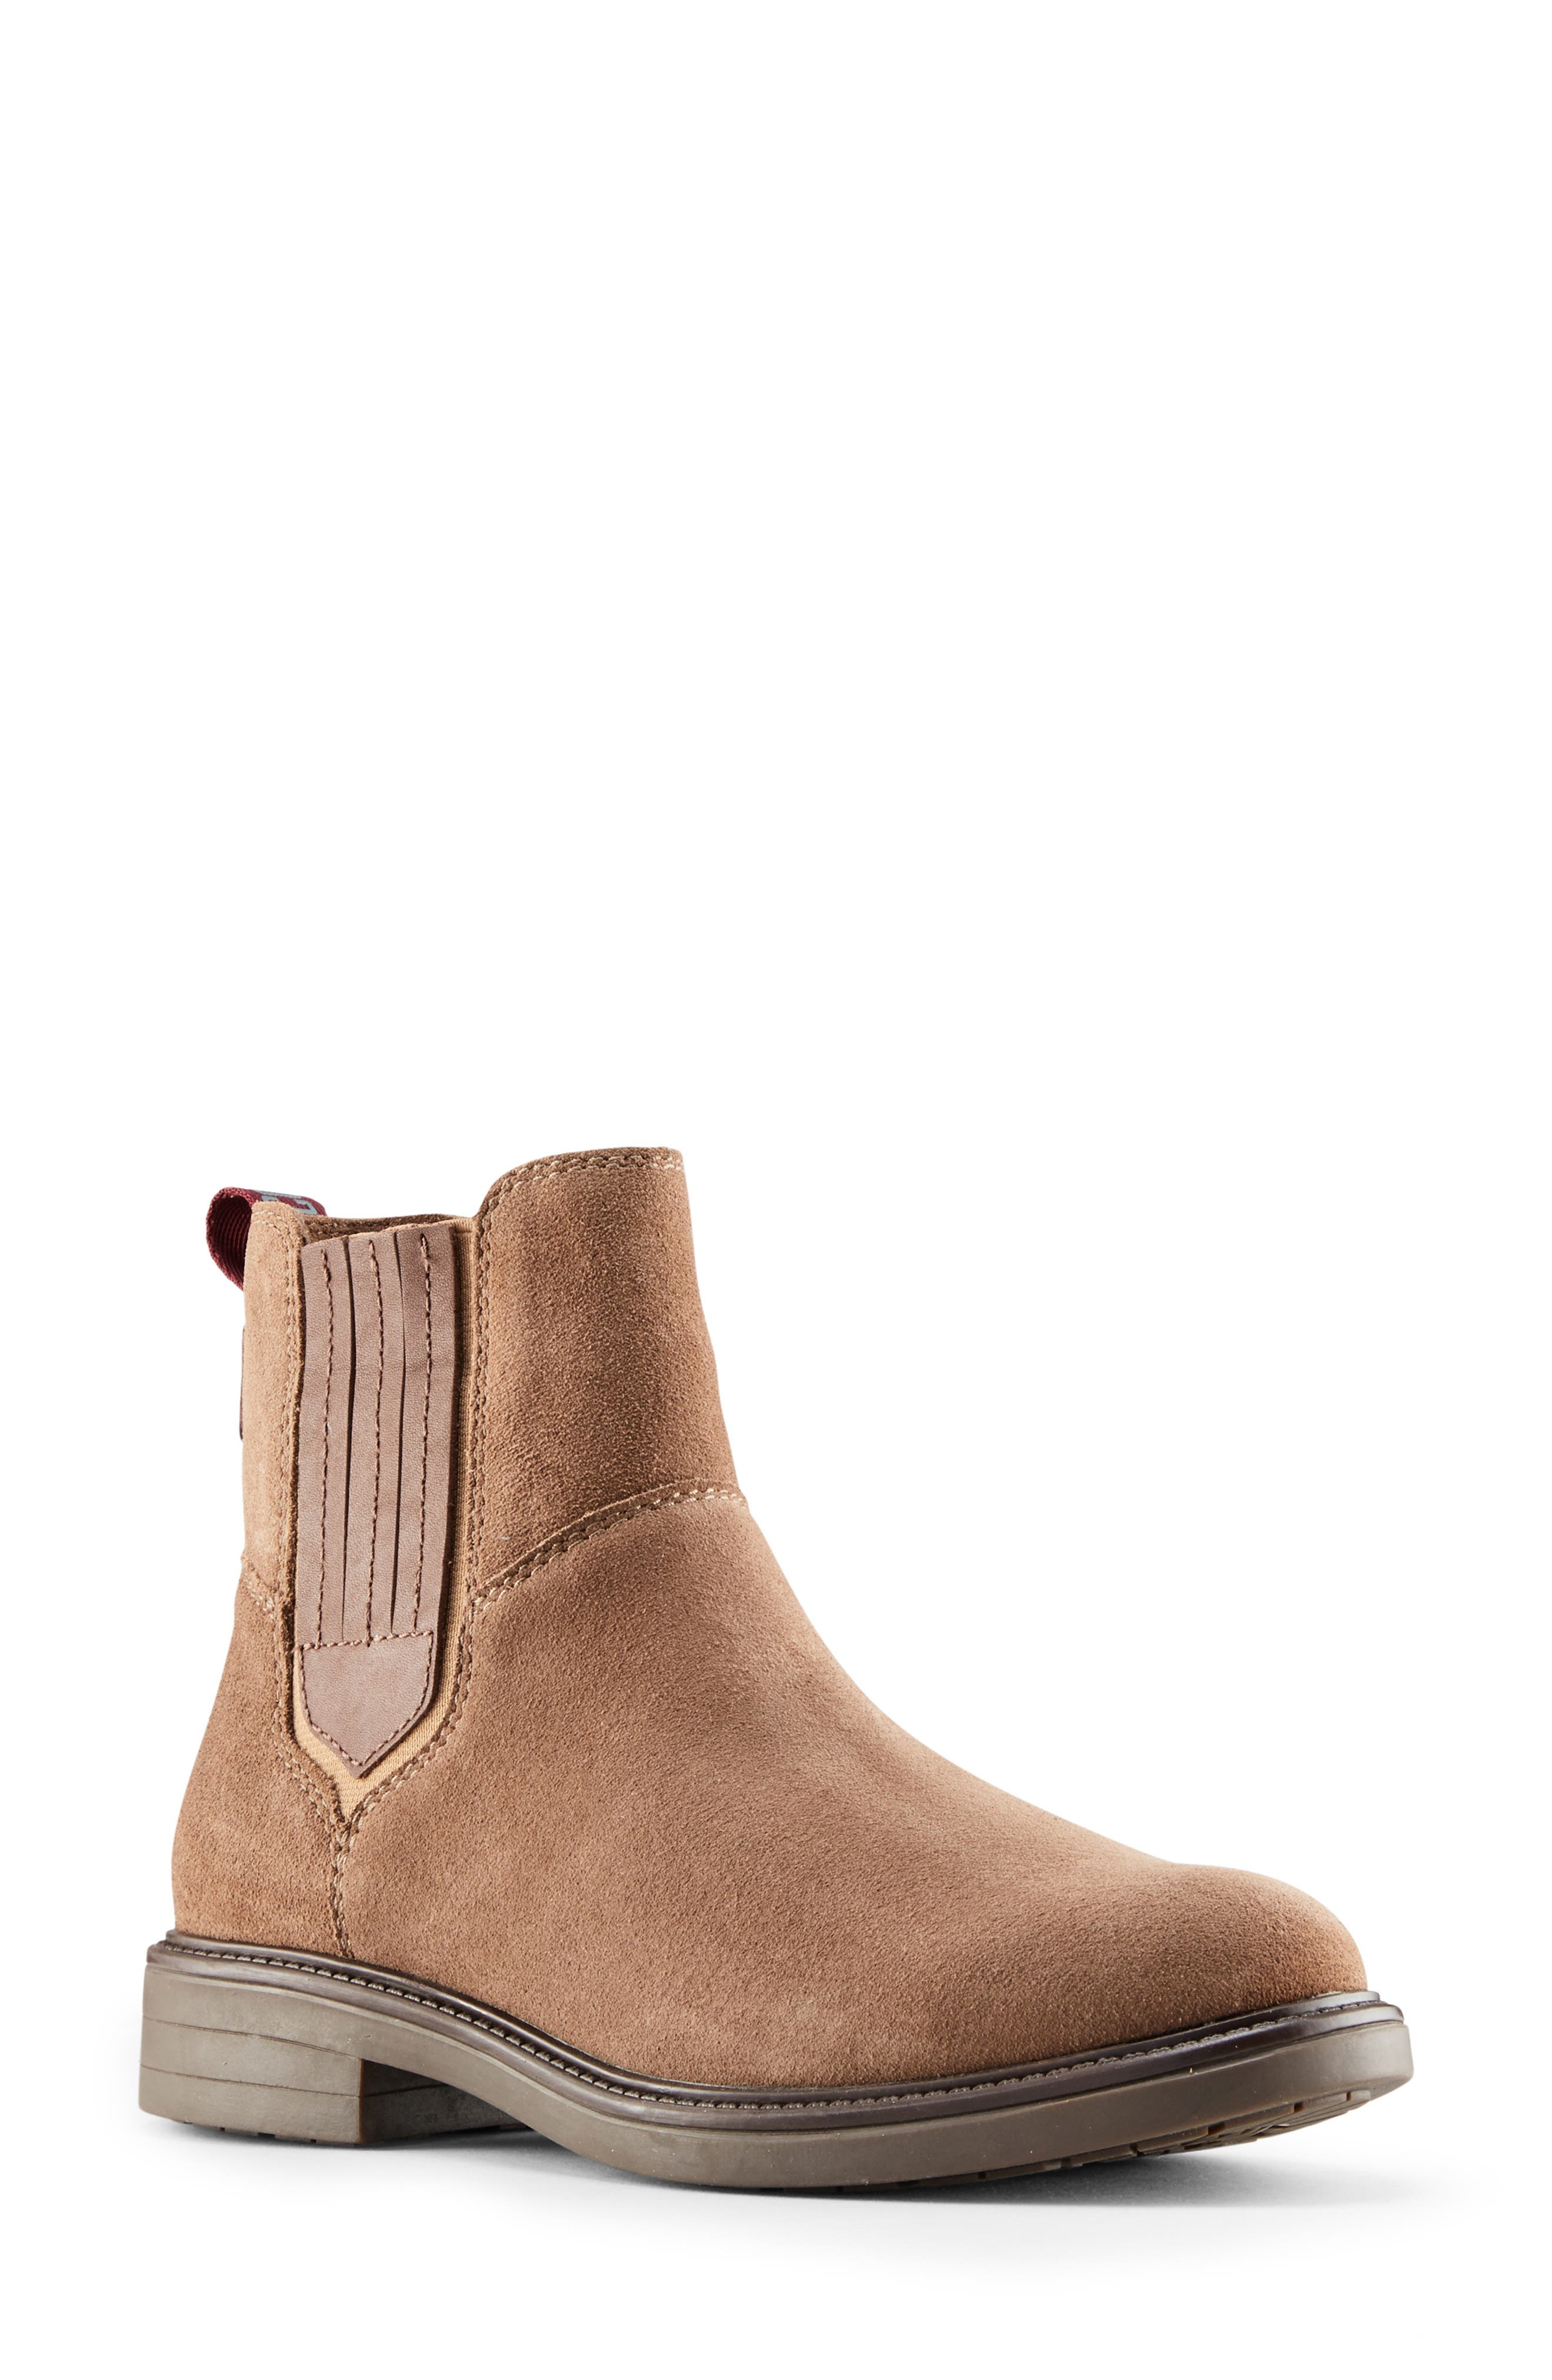 Women's Cougar Shoes | Nordstrom